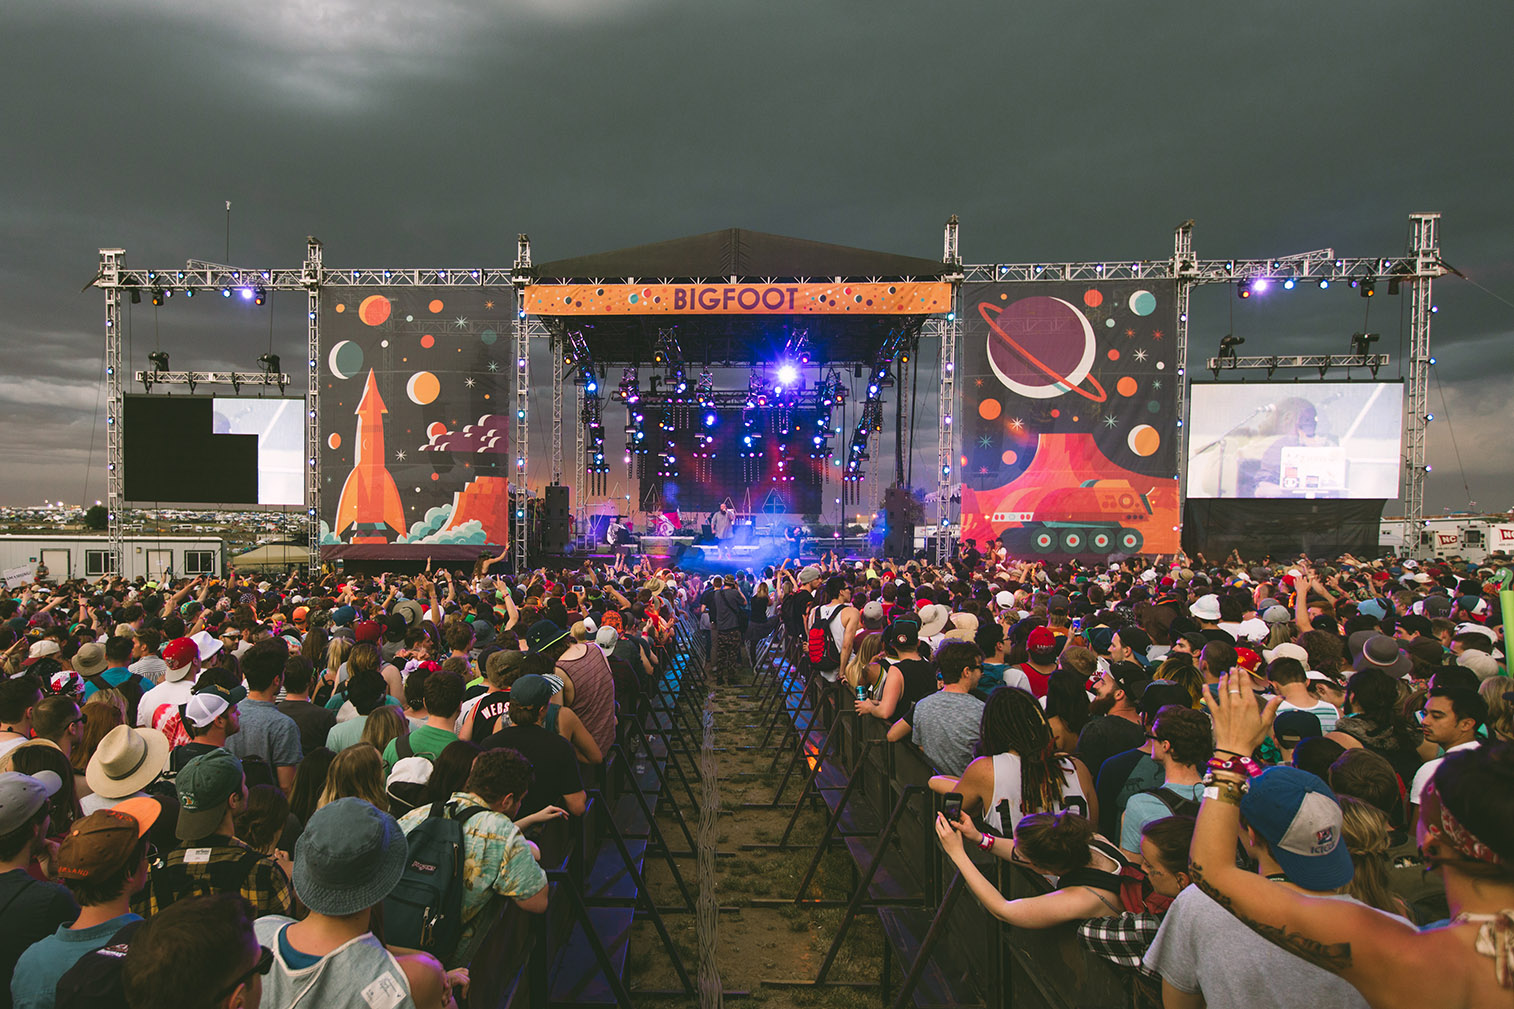 action-bronson-sunset-storm-sasquatch-2015-bigfoot-stage-clouds-sky-performance.jpg